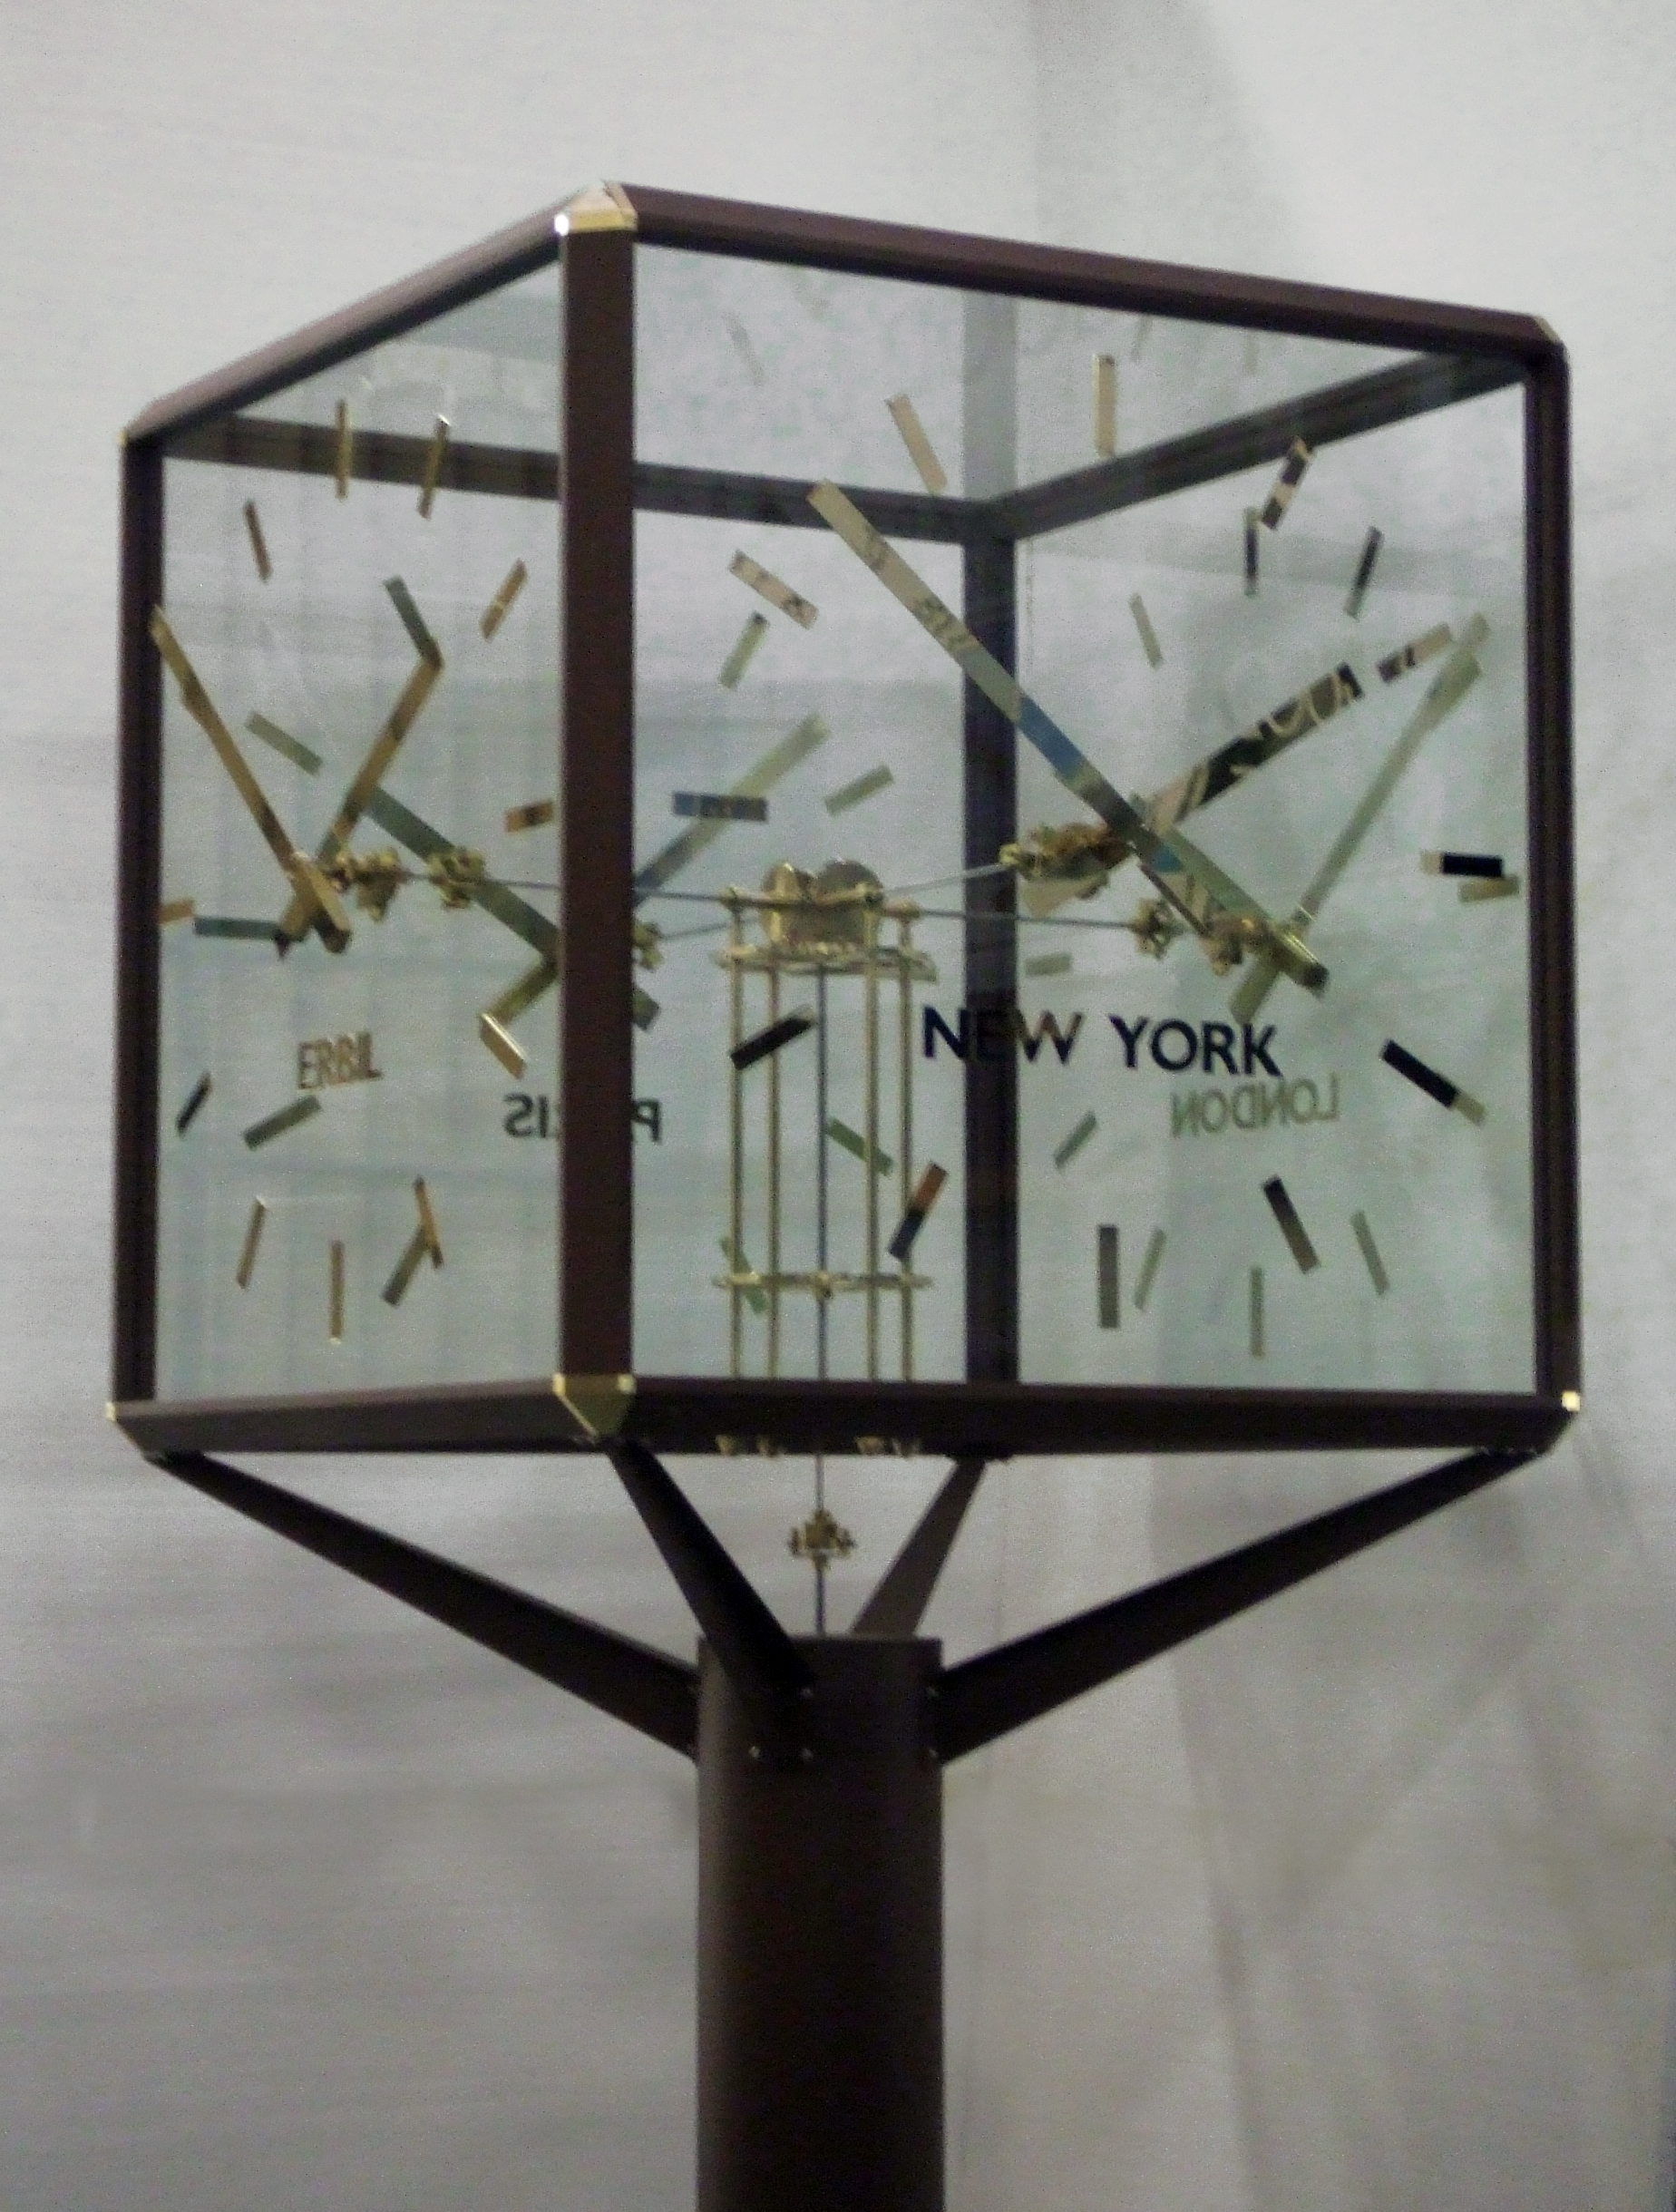 Bespoke glass clock for Erbil